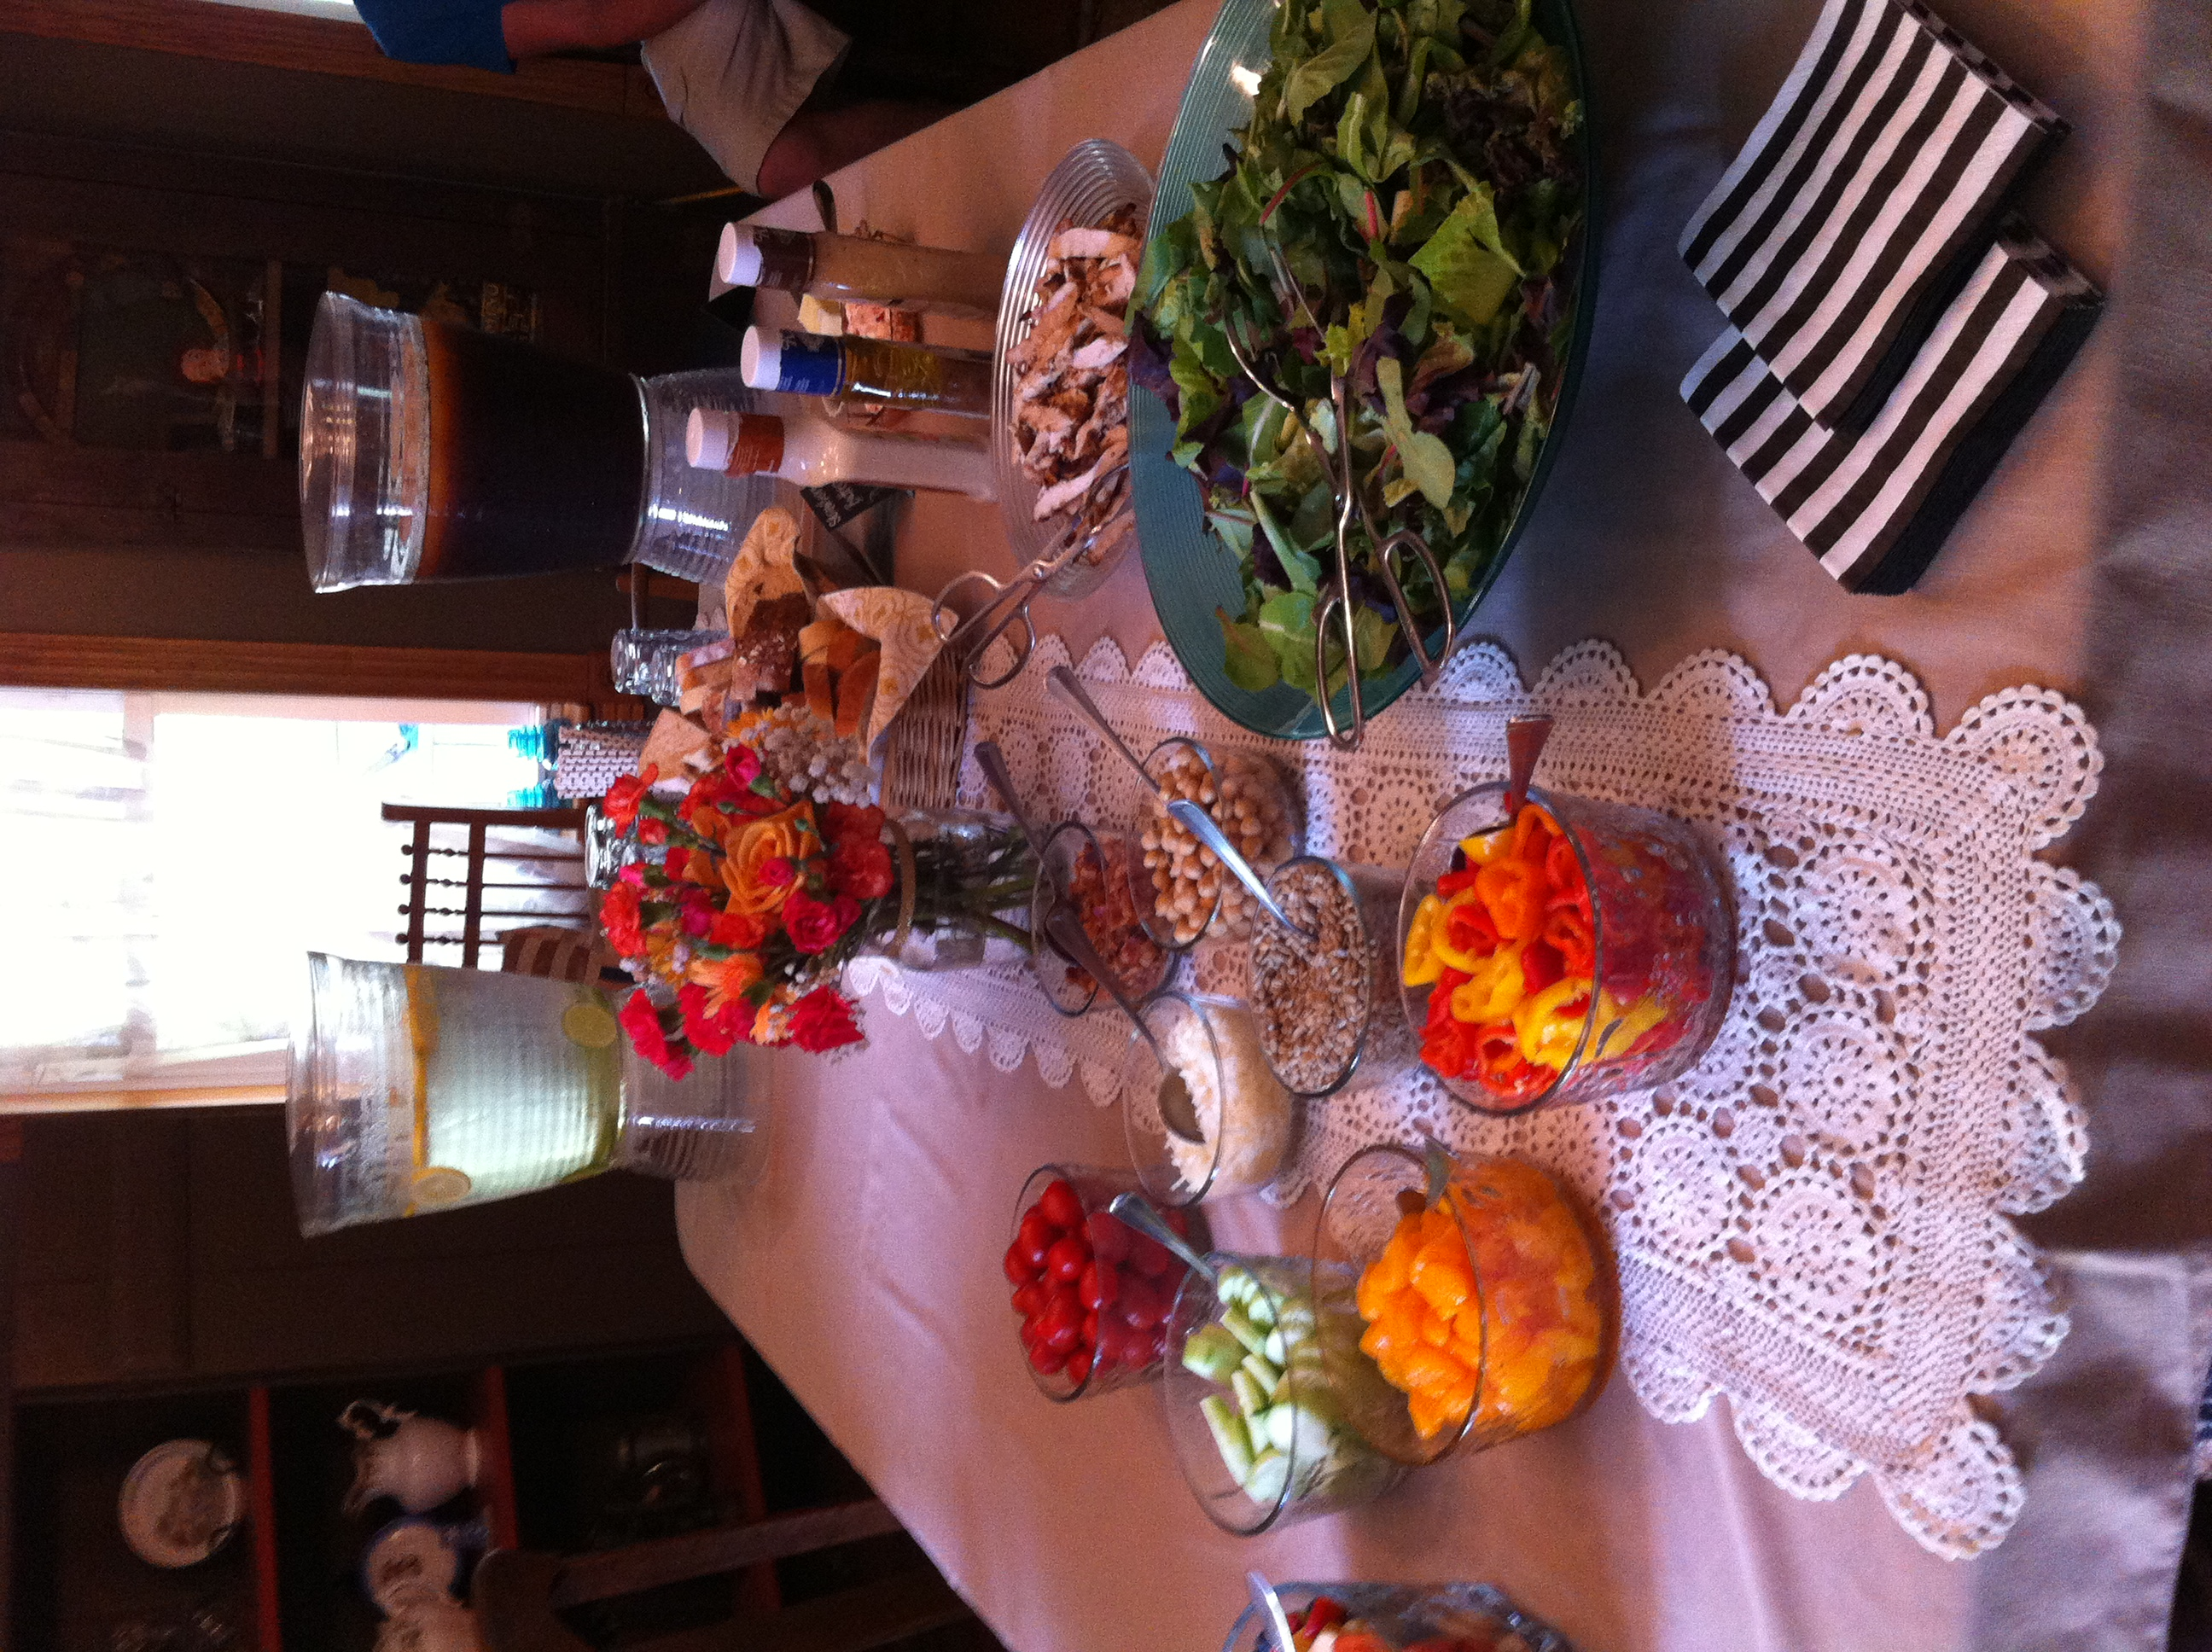 Birthday Party // Summer Picnic // Orange and Coral Flowers // Chalkboard Placemats //  Salad Bar // 5 O'Clock Design Co.